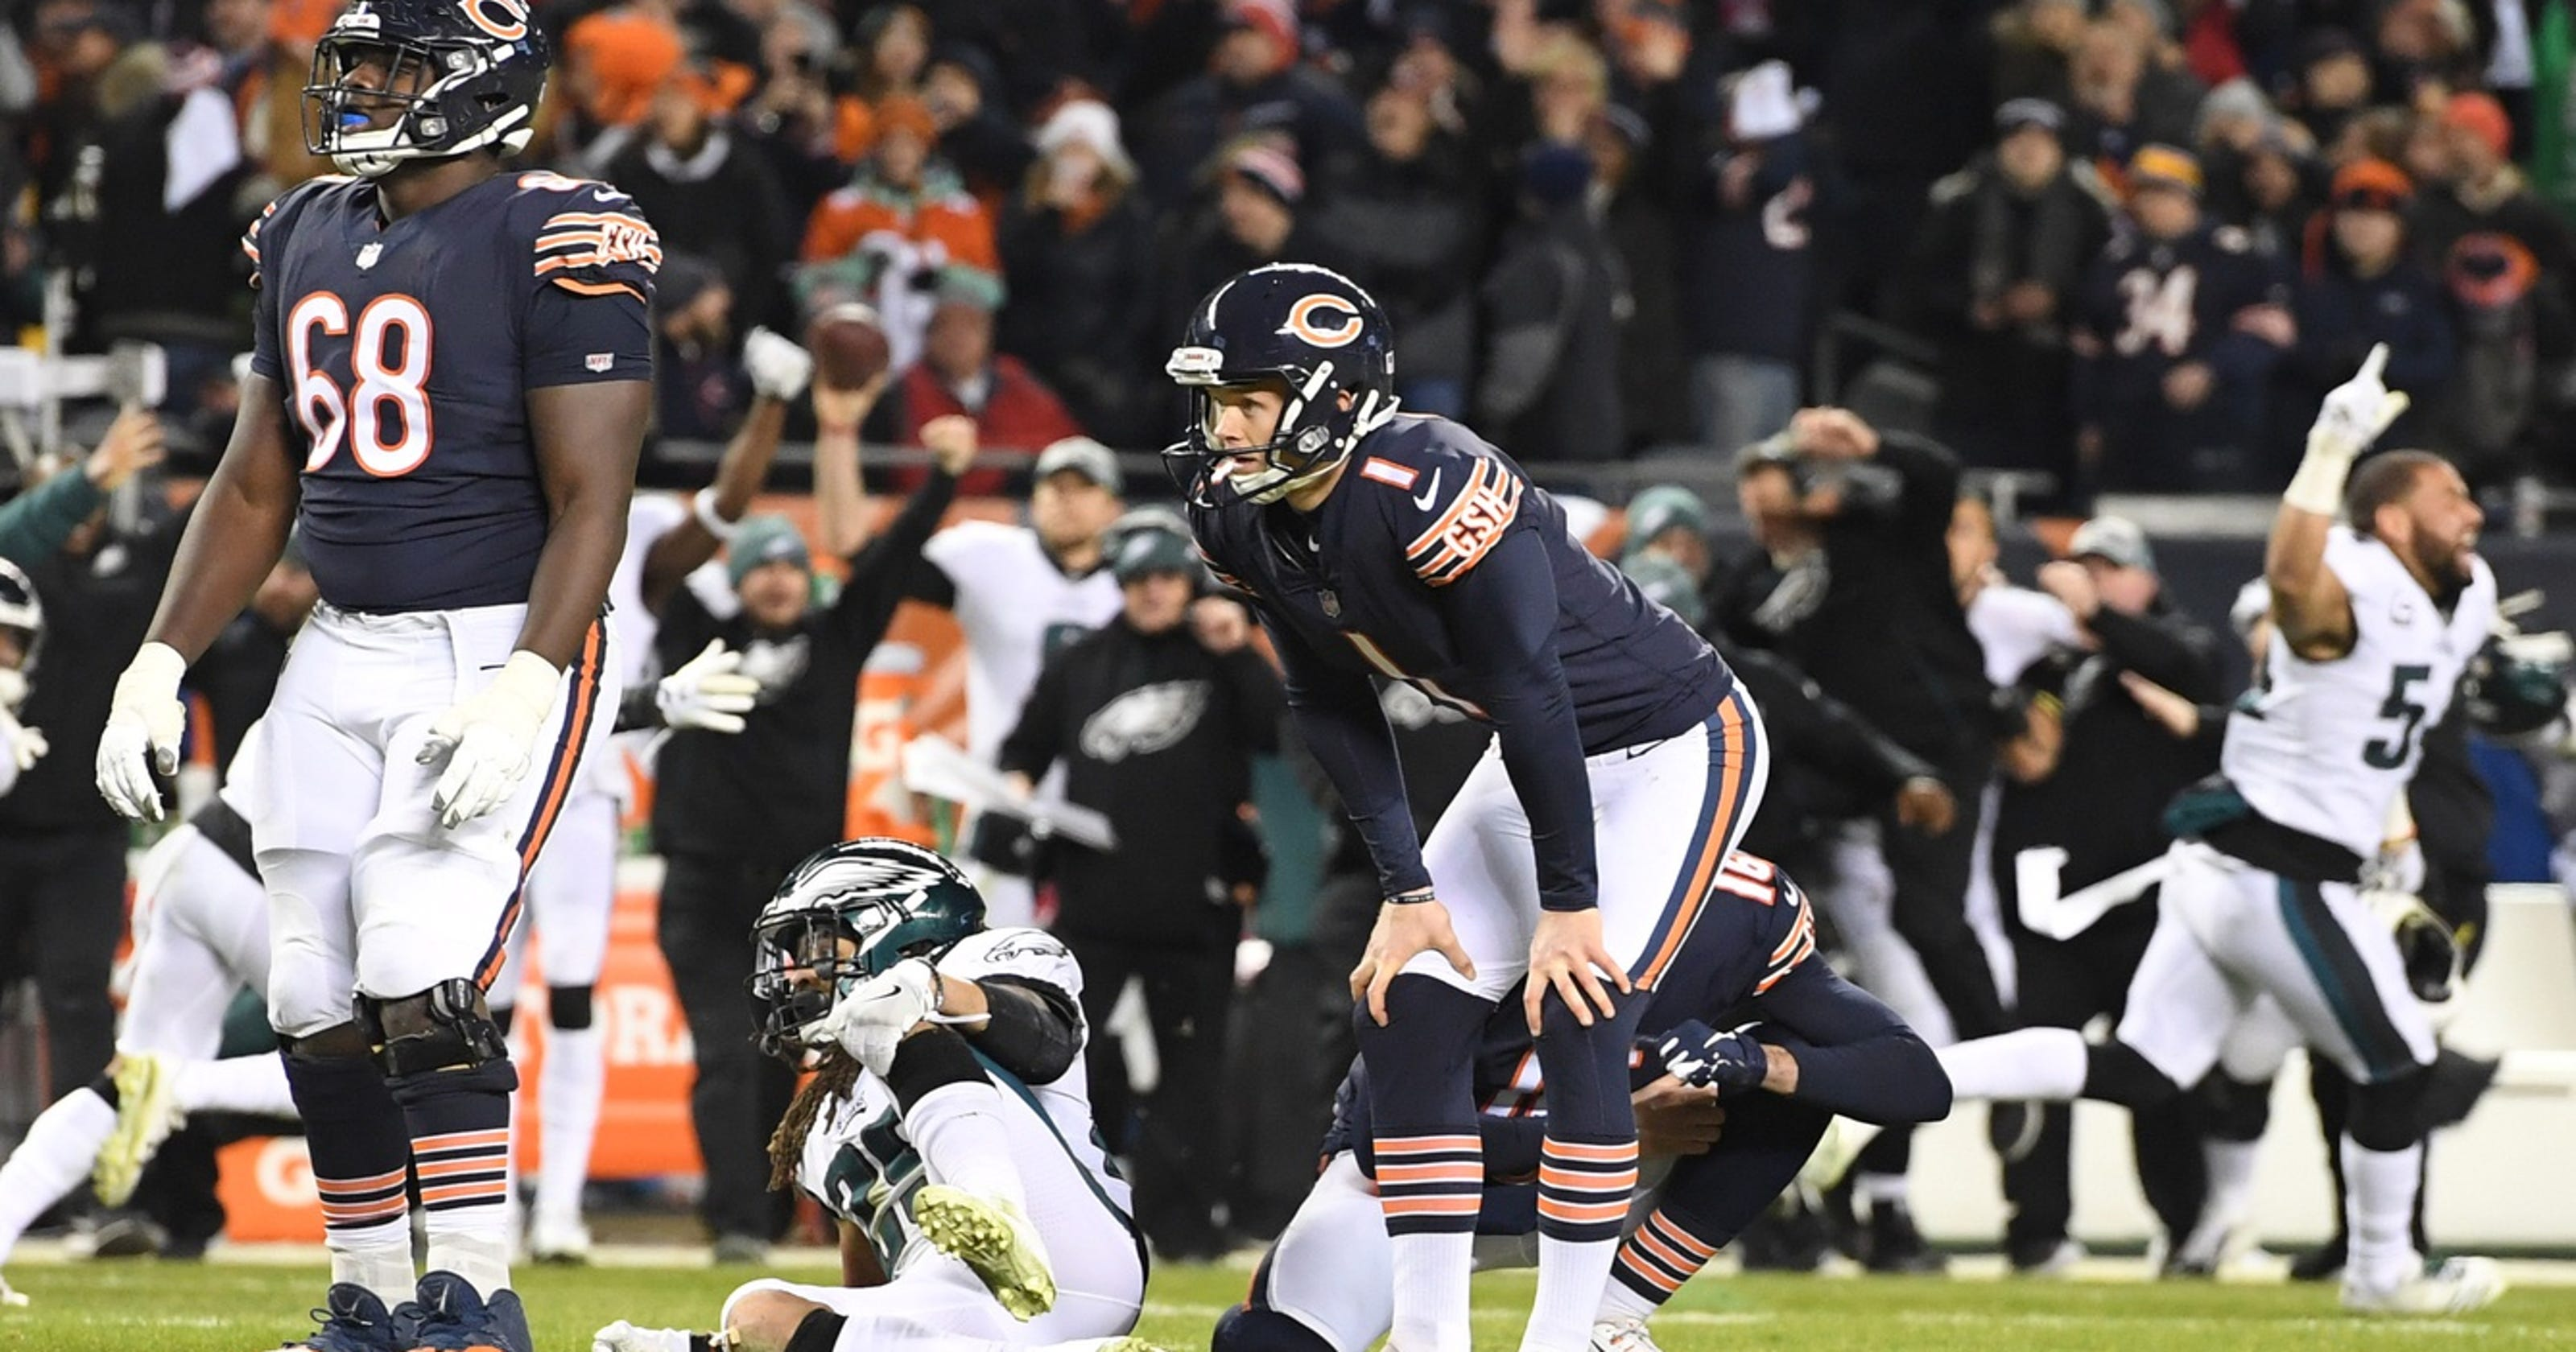 914f448636a NFL officially changes Cody Parkey s missed kick to blocked field goal by  Eagles